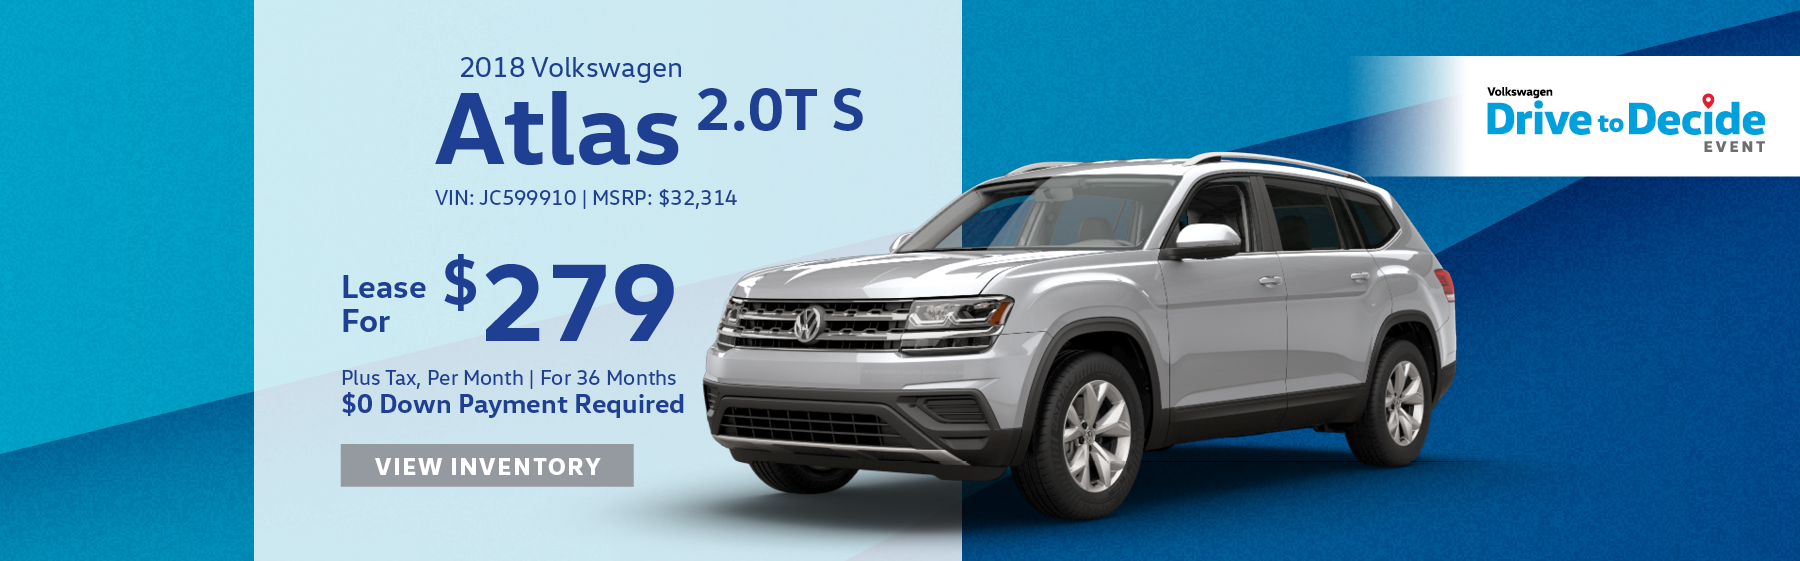 Lease the 2018 Volkswagen Atlas 2.0T S for $279 per month, plus tax for 36 months. Click here to view inventory.